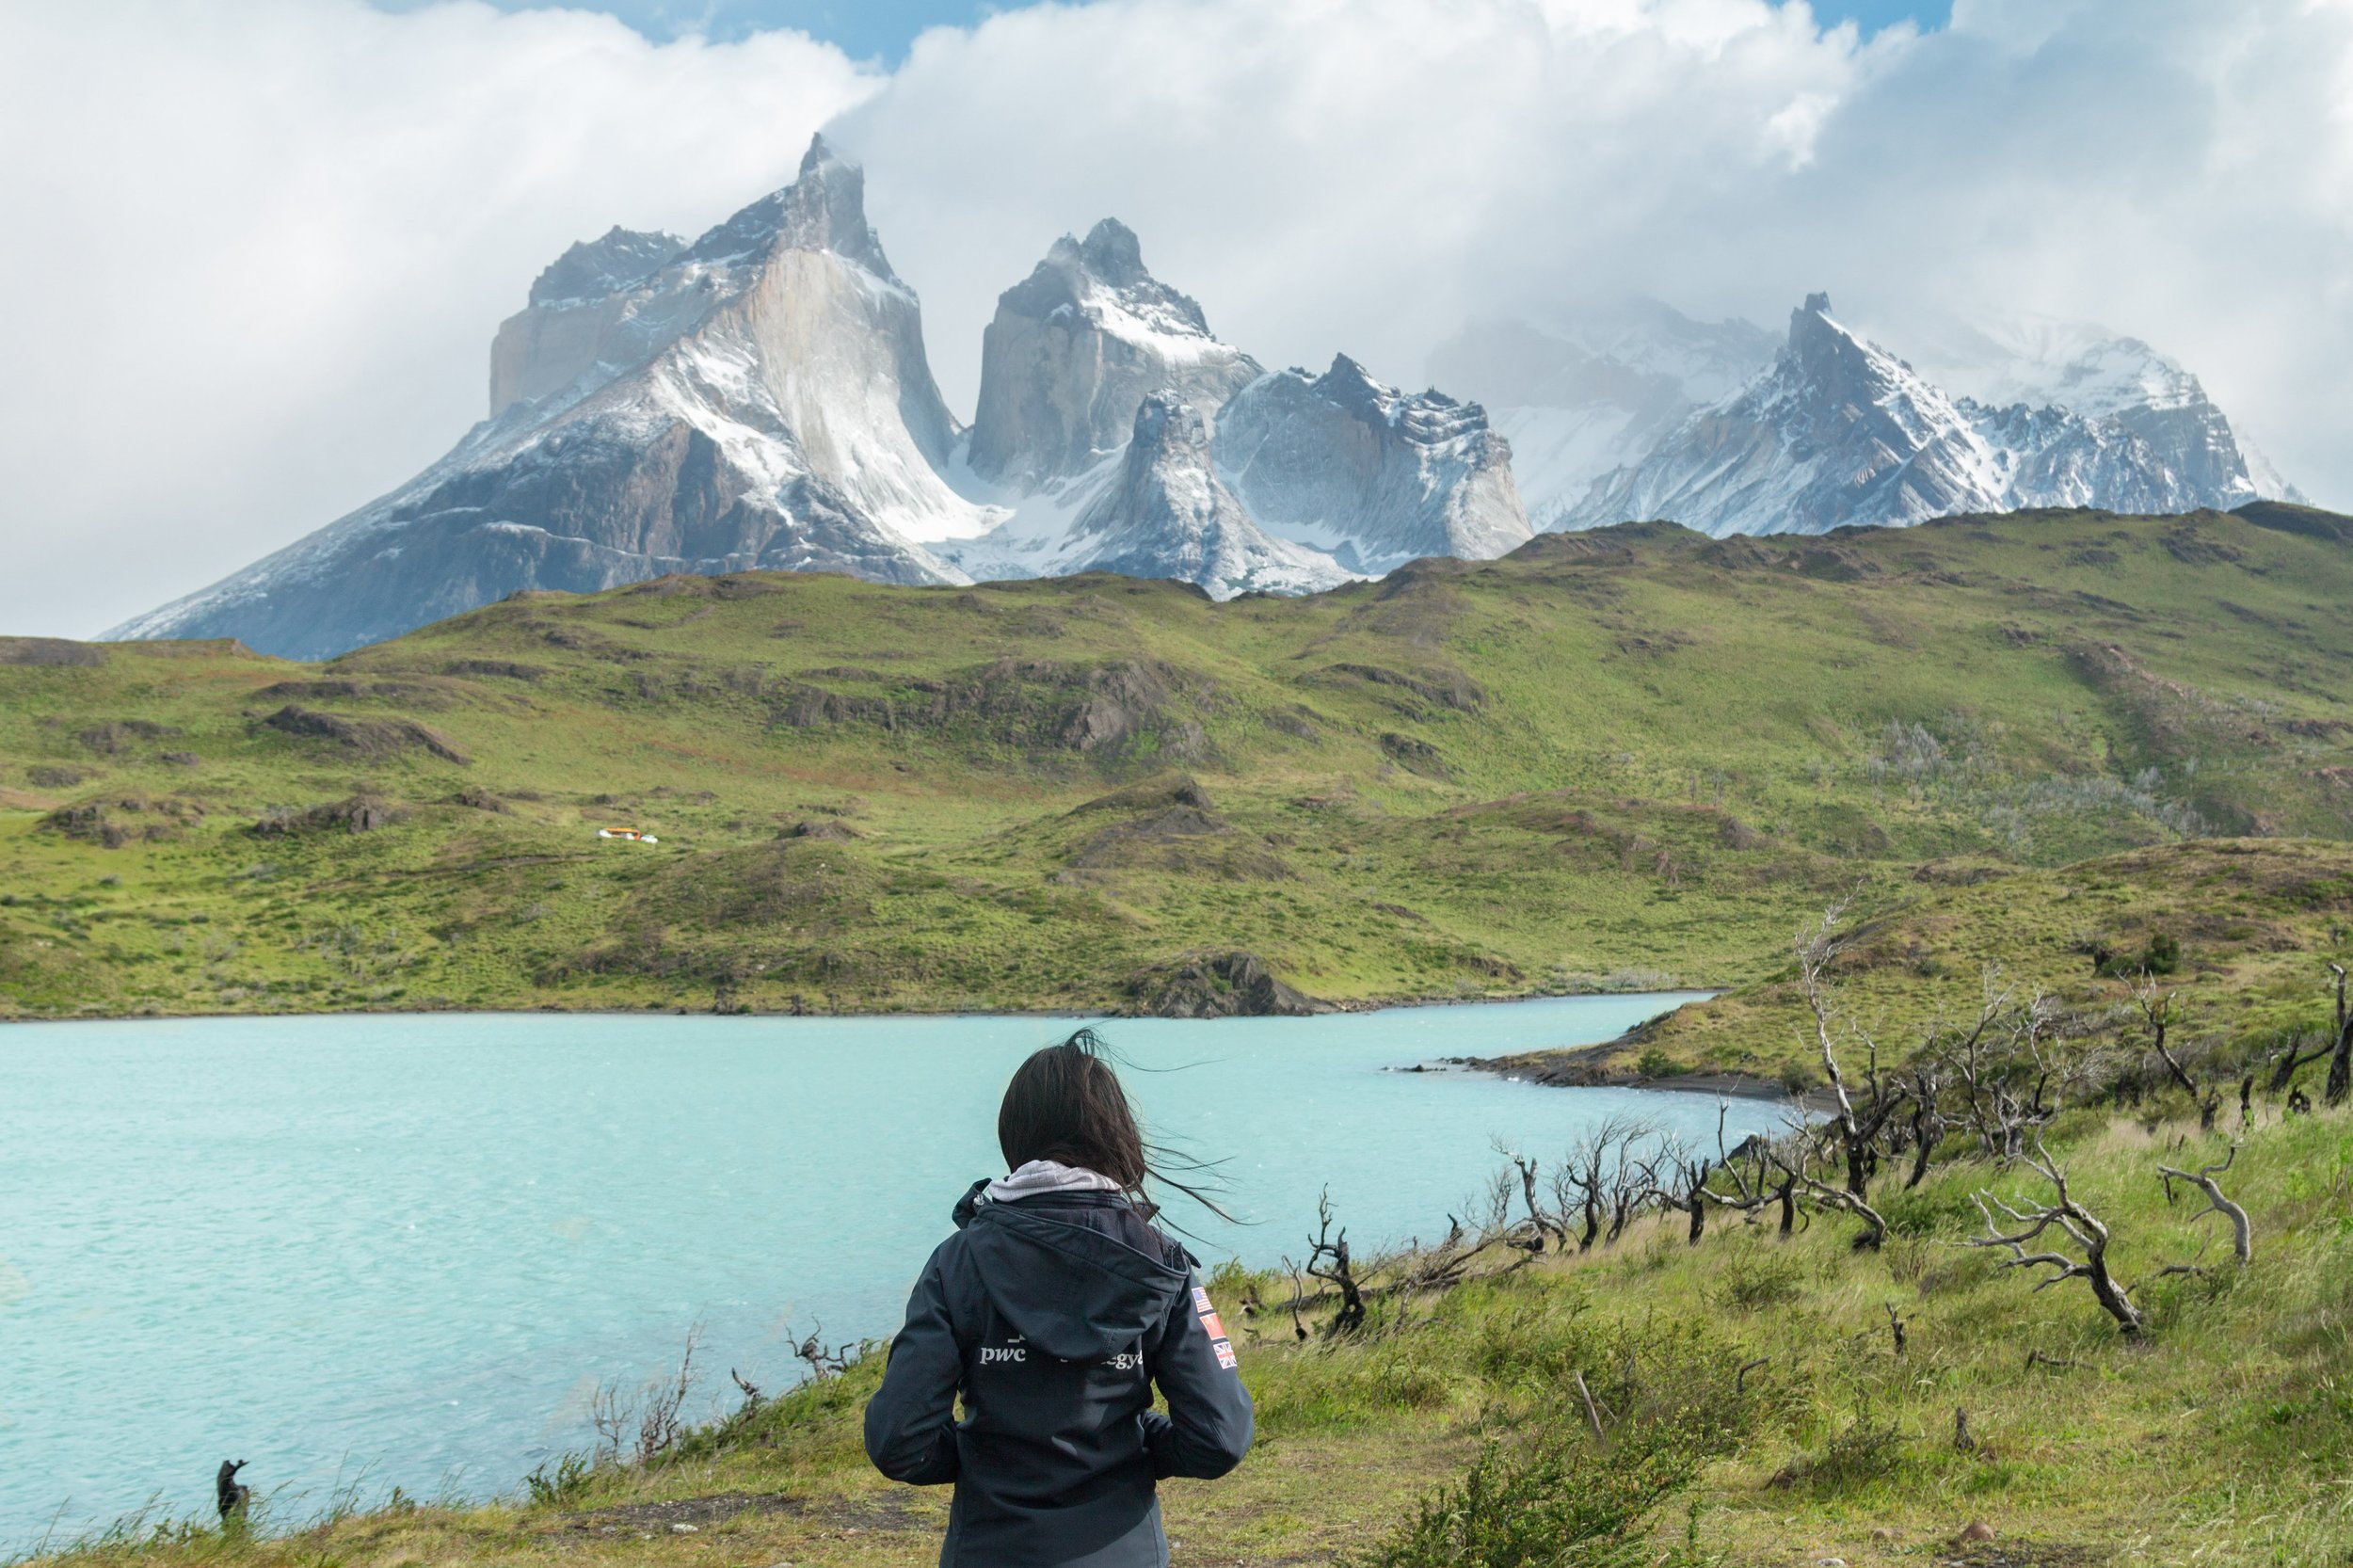 Best Adventure Travel Destinations - Patagonia